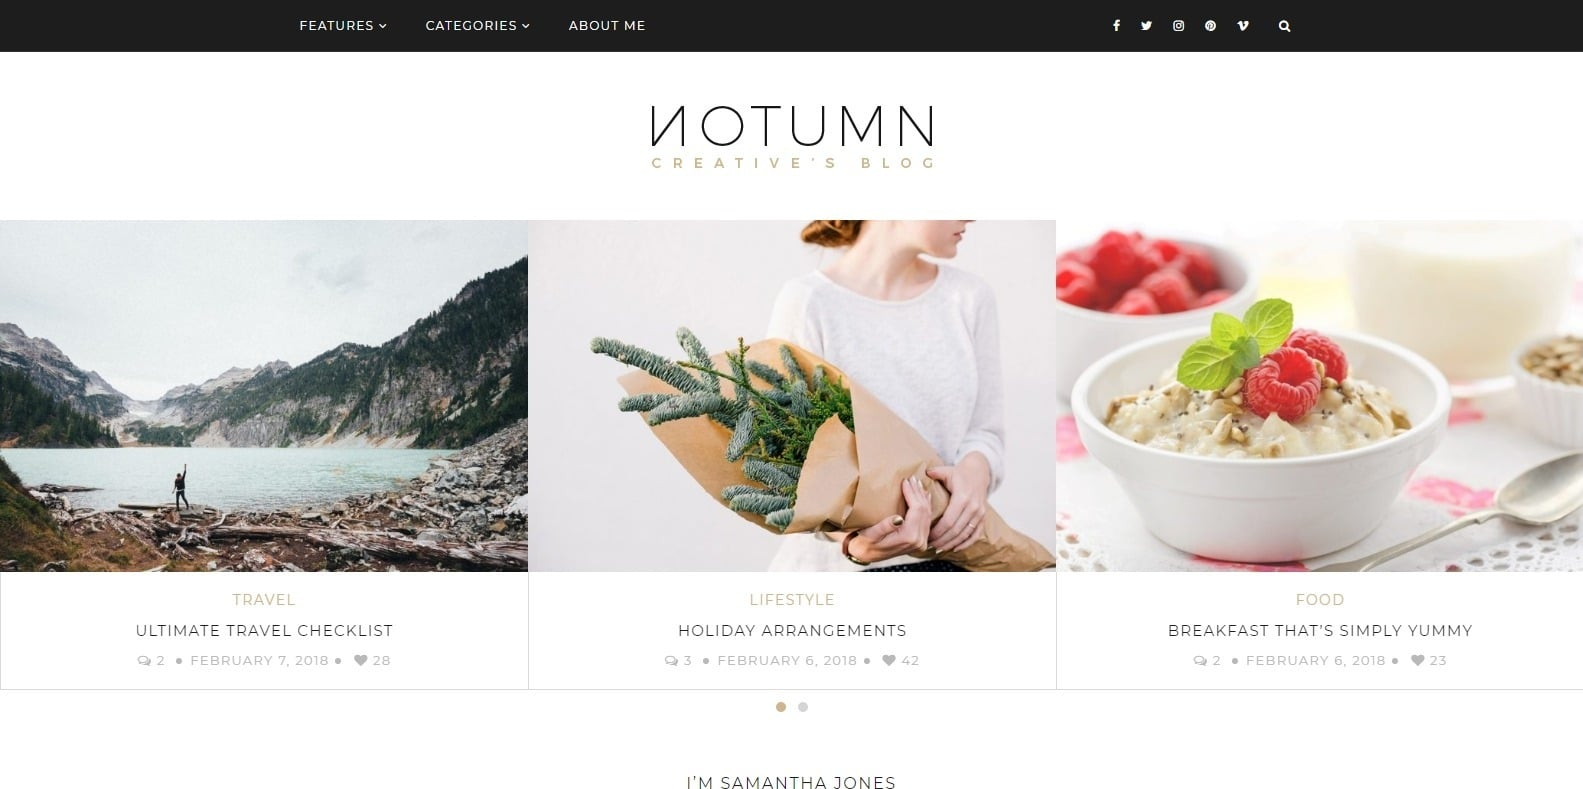 notumn-food-blog-website-template